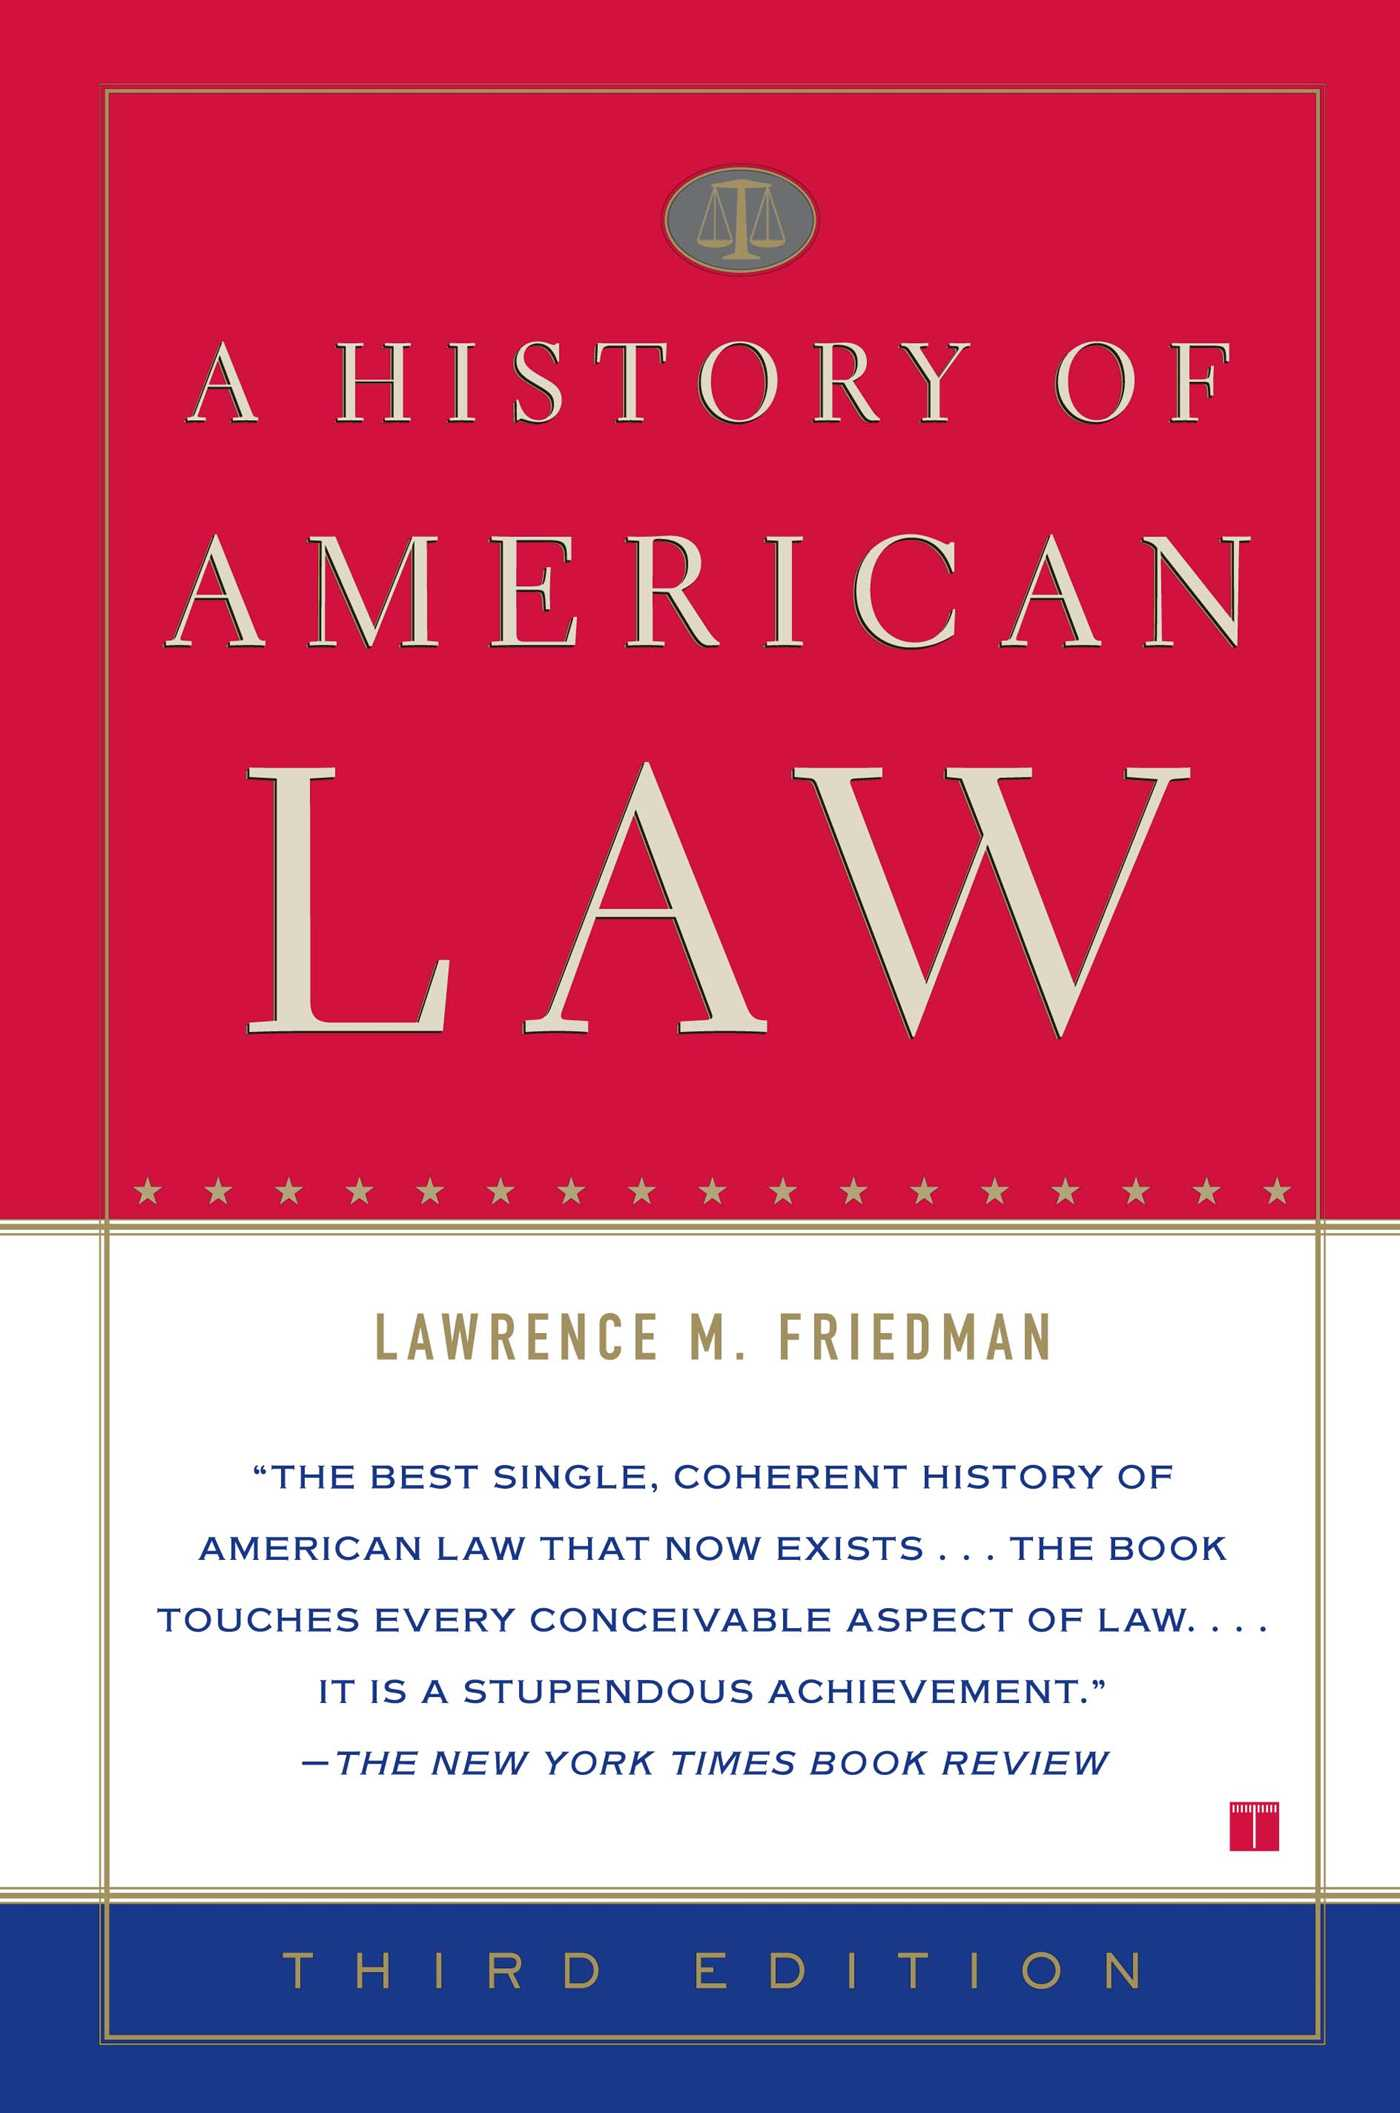 History-of-american-law-third-edition-9780743282581_hr